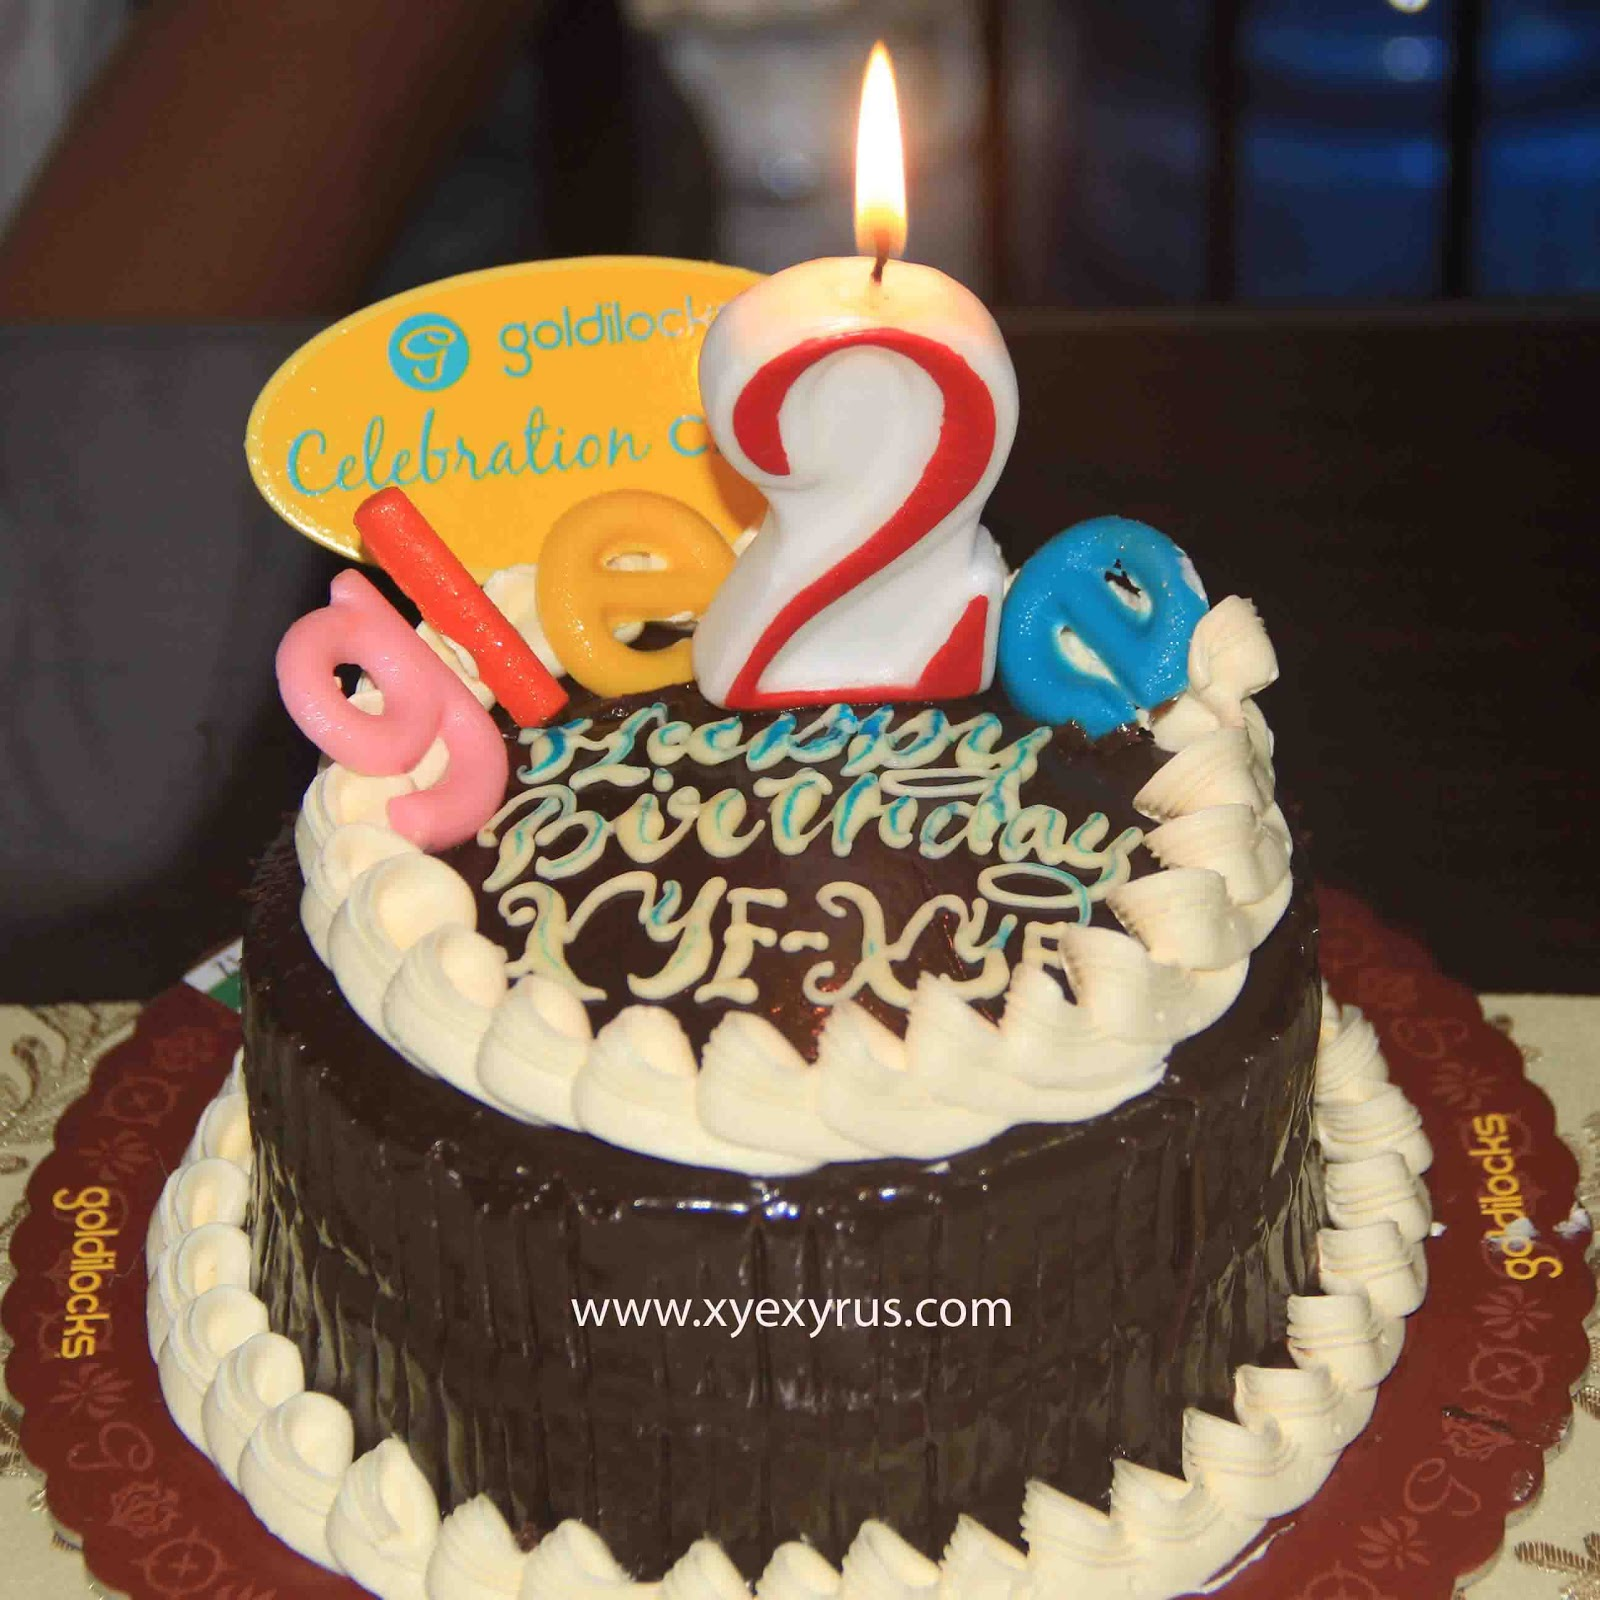 Deliciouslyspicy moments gleeful birthday cake special day to be celebrated in a small way before the simple celebration due two days after i bought this cute cake with a glee design at goldilocks publicscrutiny Gallery